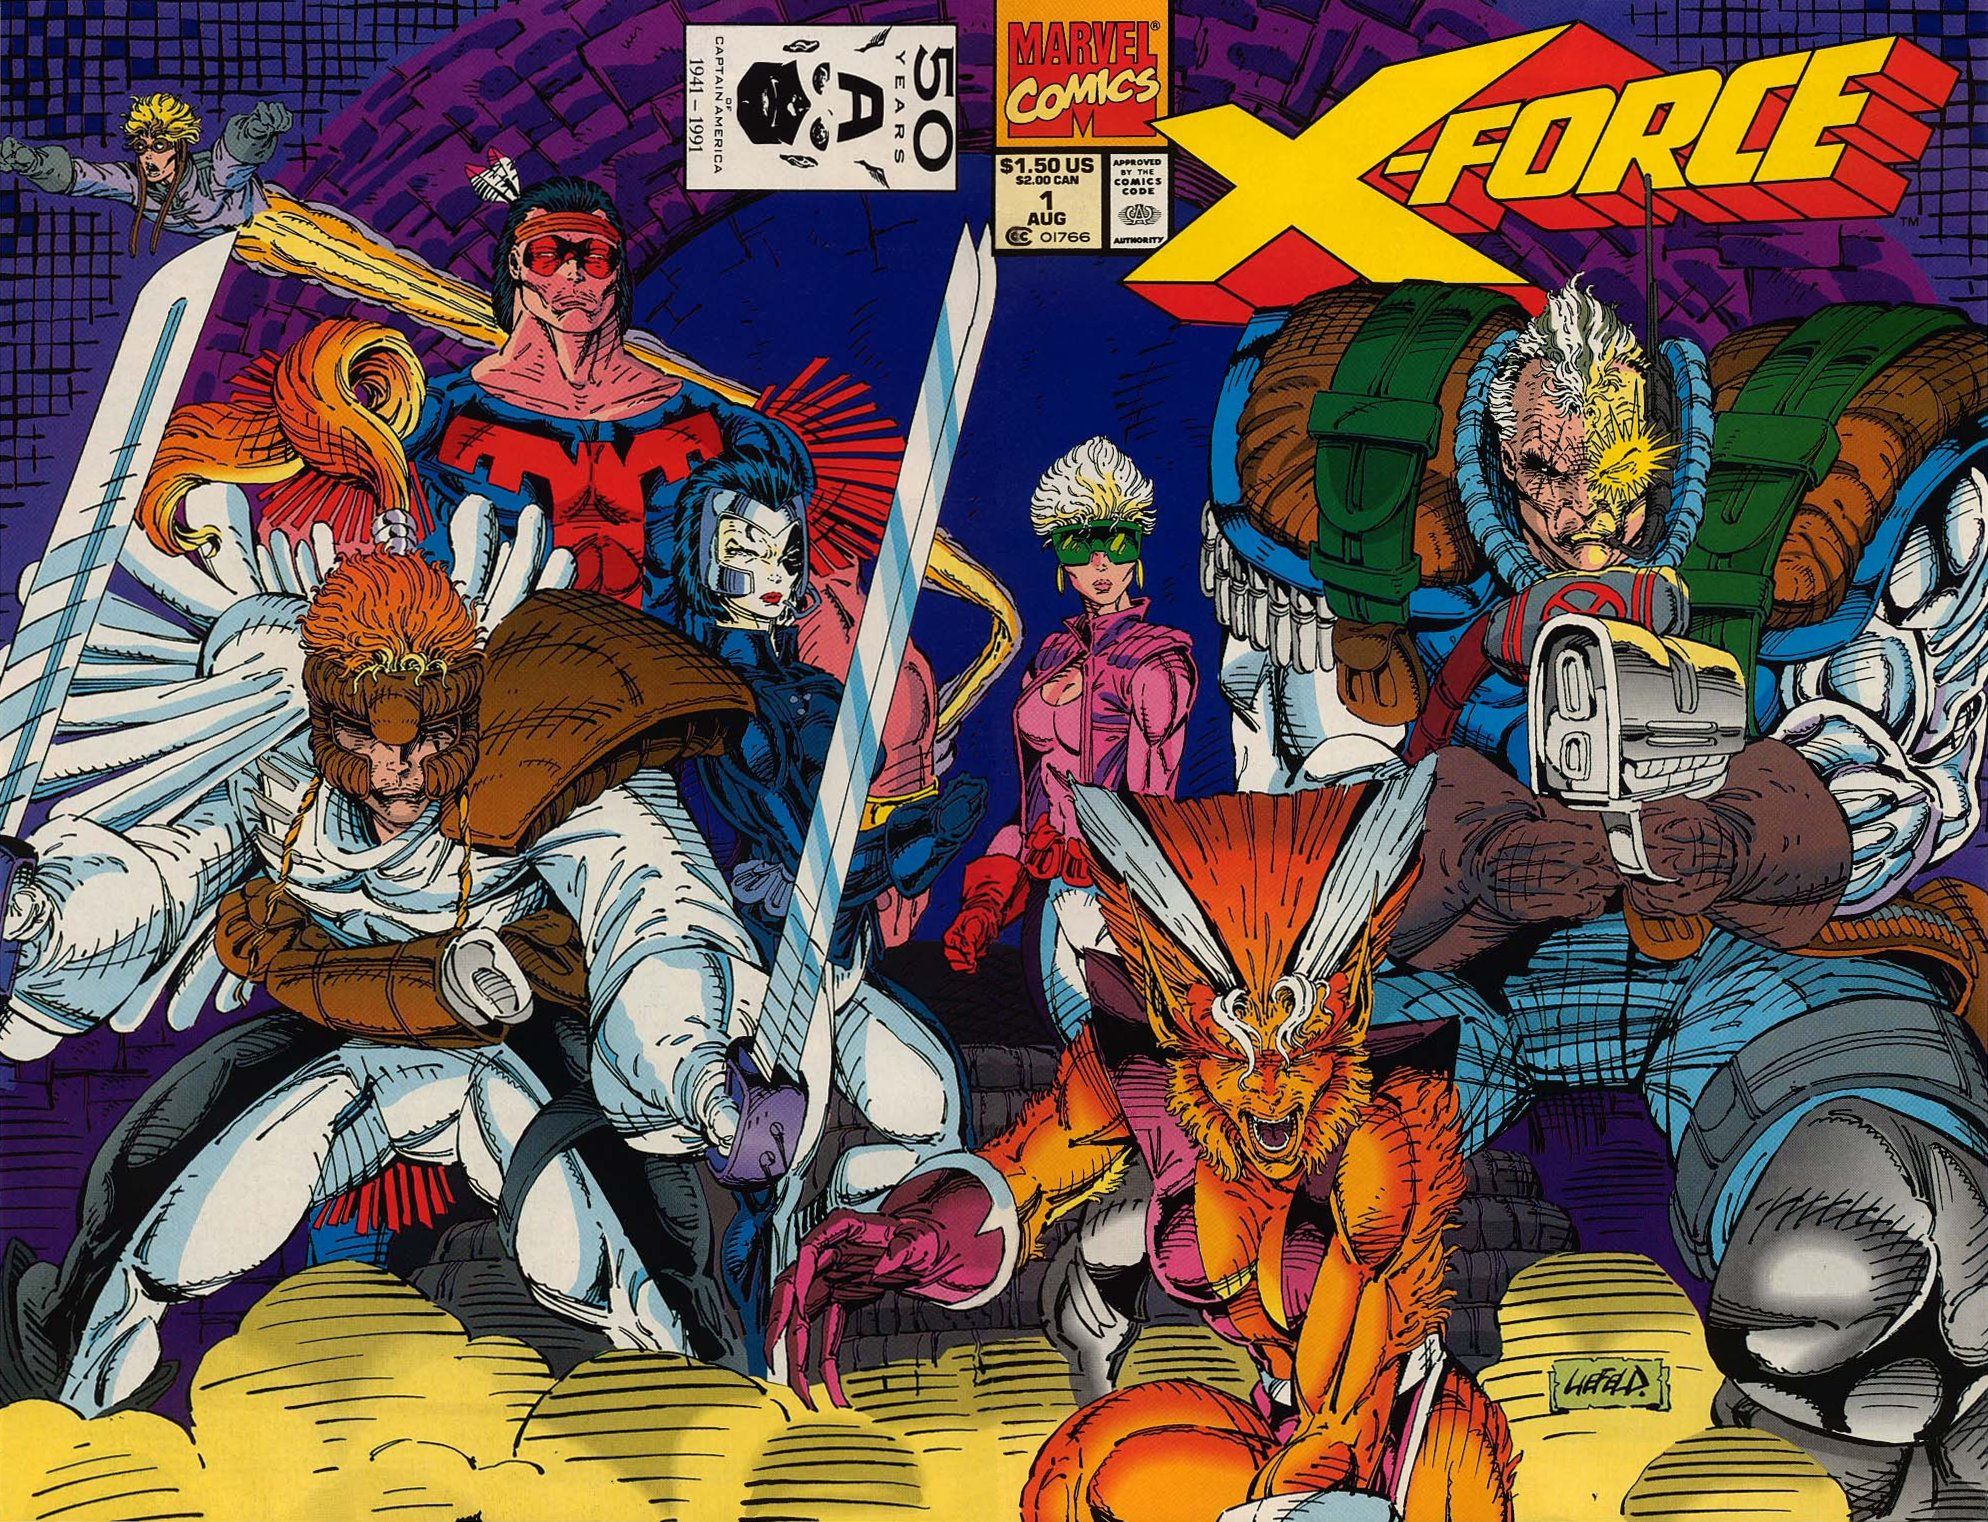 Wrap around cover for X-Force #1